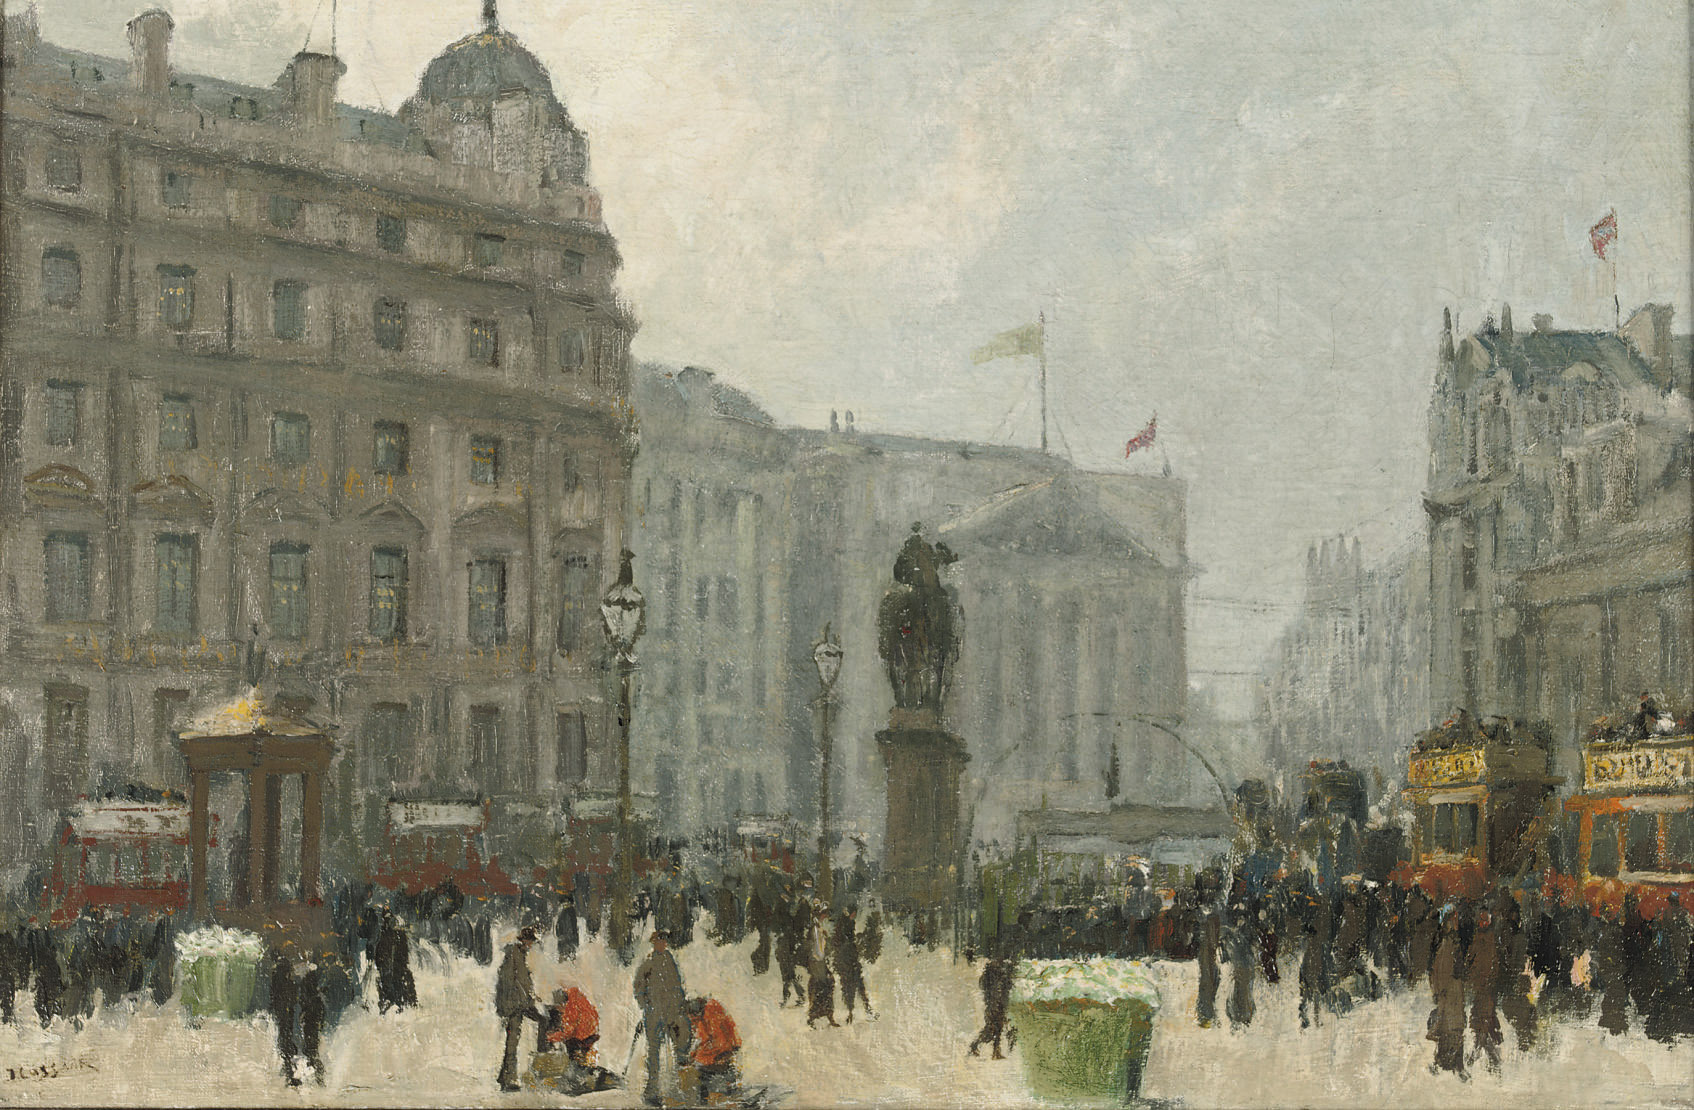 A view from Trafalgar Square towards Whitehall, London